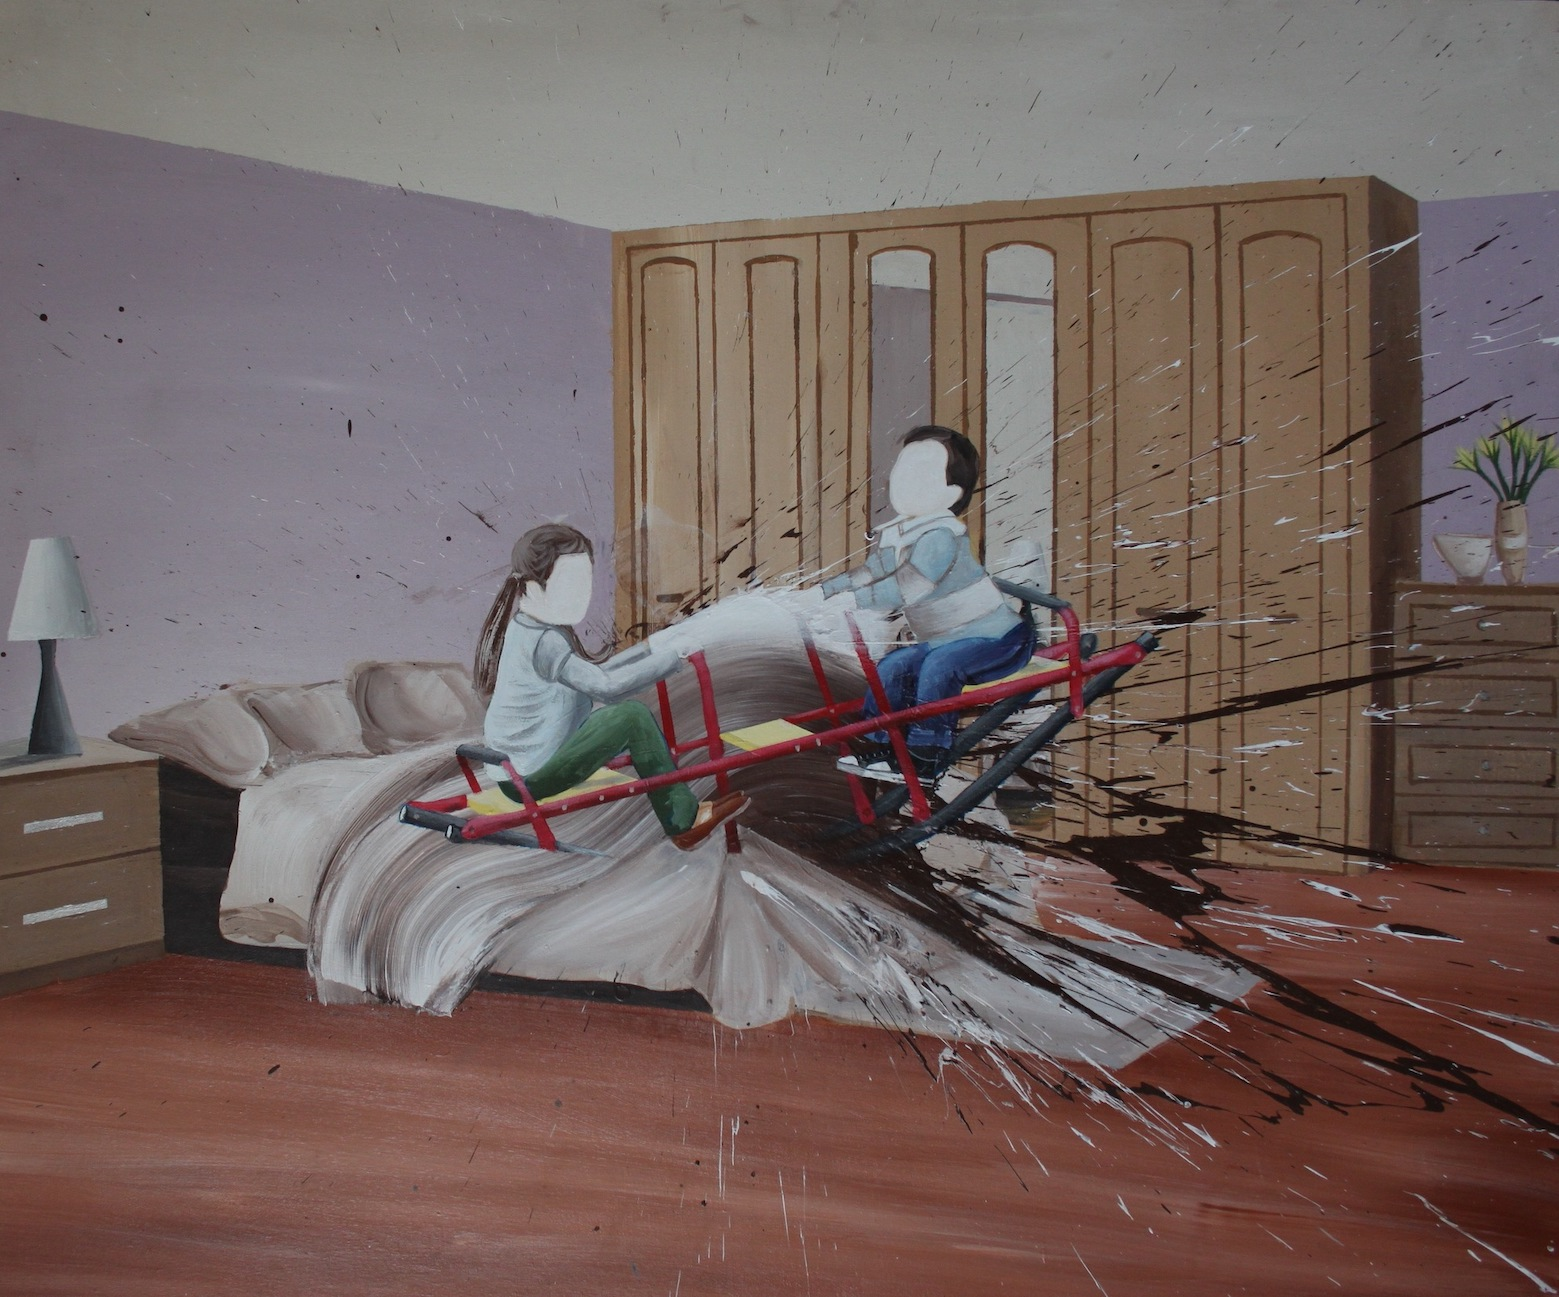 HANY RASHED / Fourth Stage (The Room), July 16, 2020 / 120 x 100 cm / Acrylic on canvas / LE 75,000 / USD 4,800 / PALESTINE-128